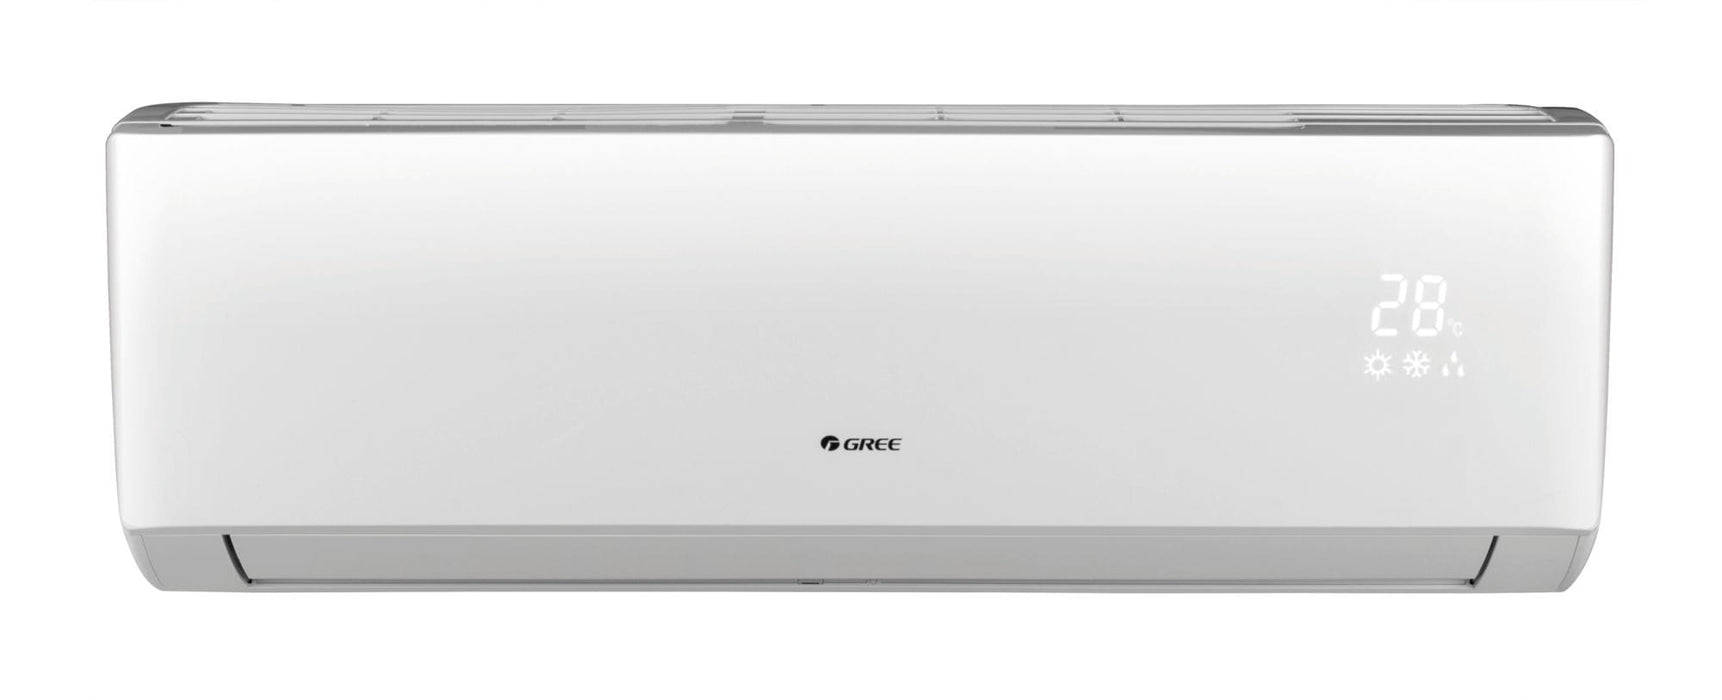 Gree 18,000 BTU 16 SEER LIVO+ Wall Mount Ductless Mini Split Indoor Unit 208-230V